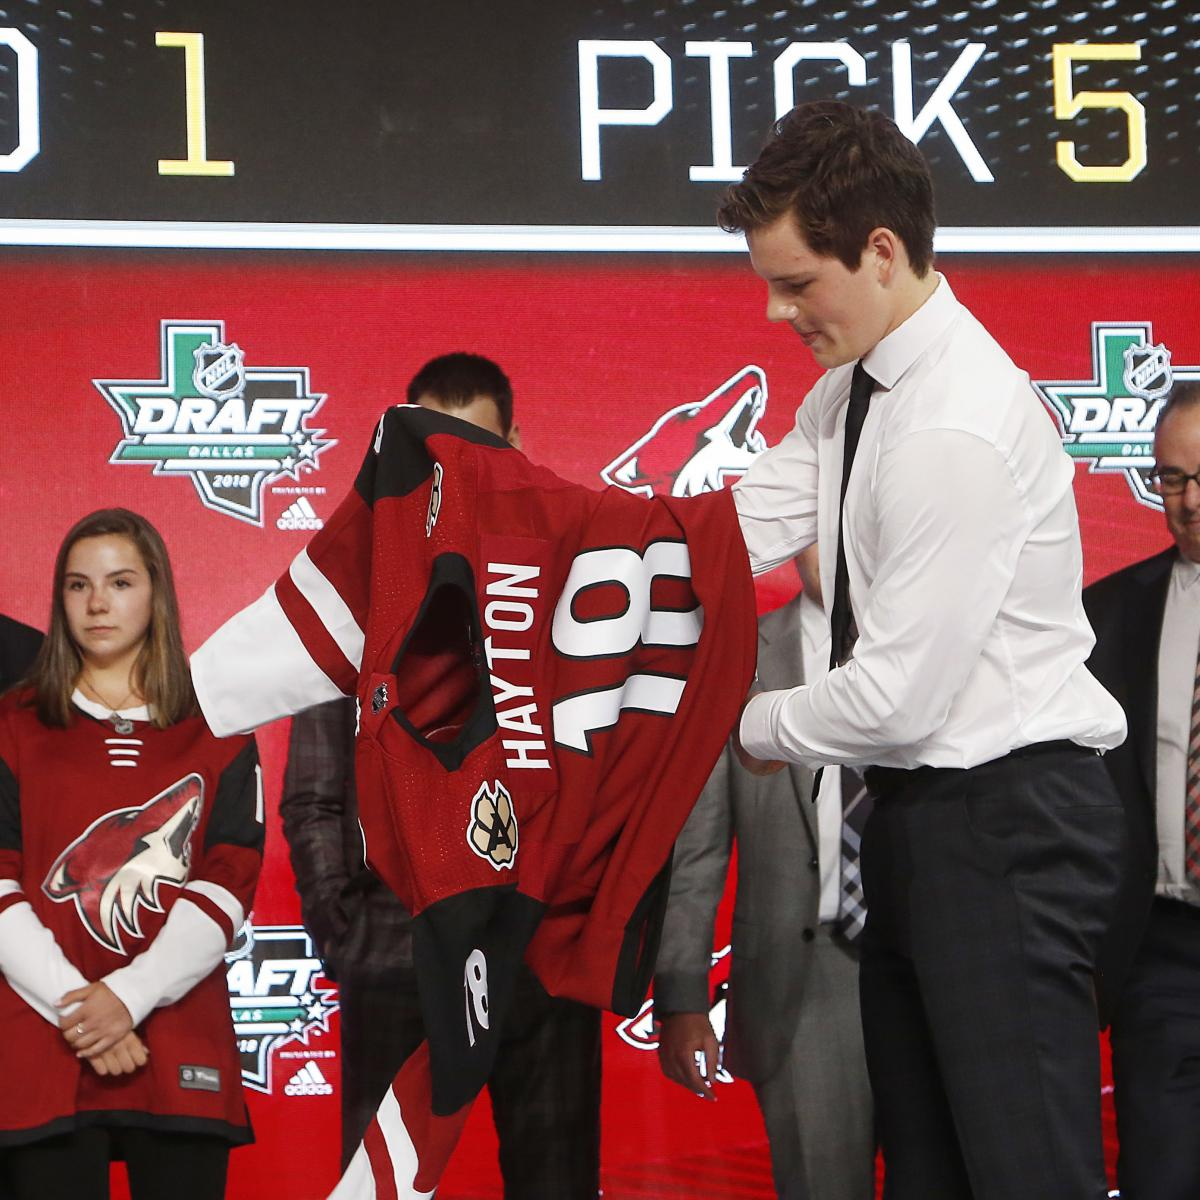 NHL Draft 2018 Order: Day 2 Selection List, TV Schedule and Day 1 Results